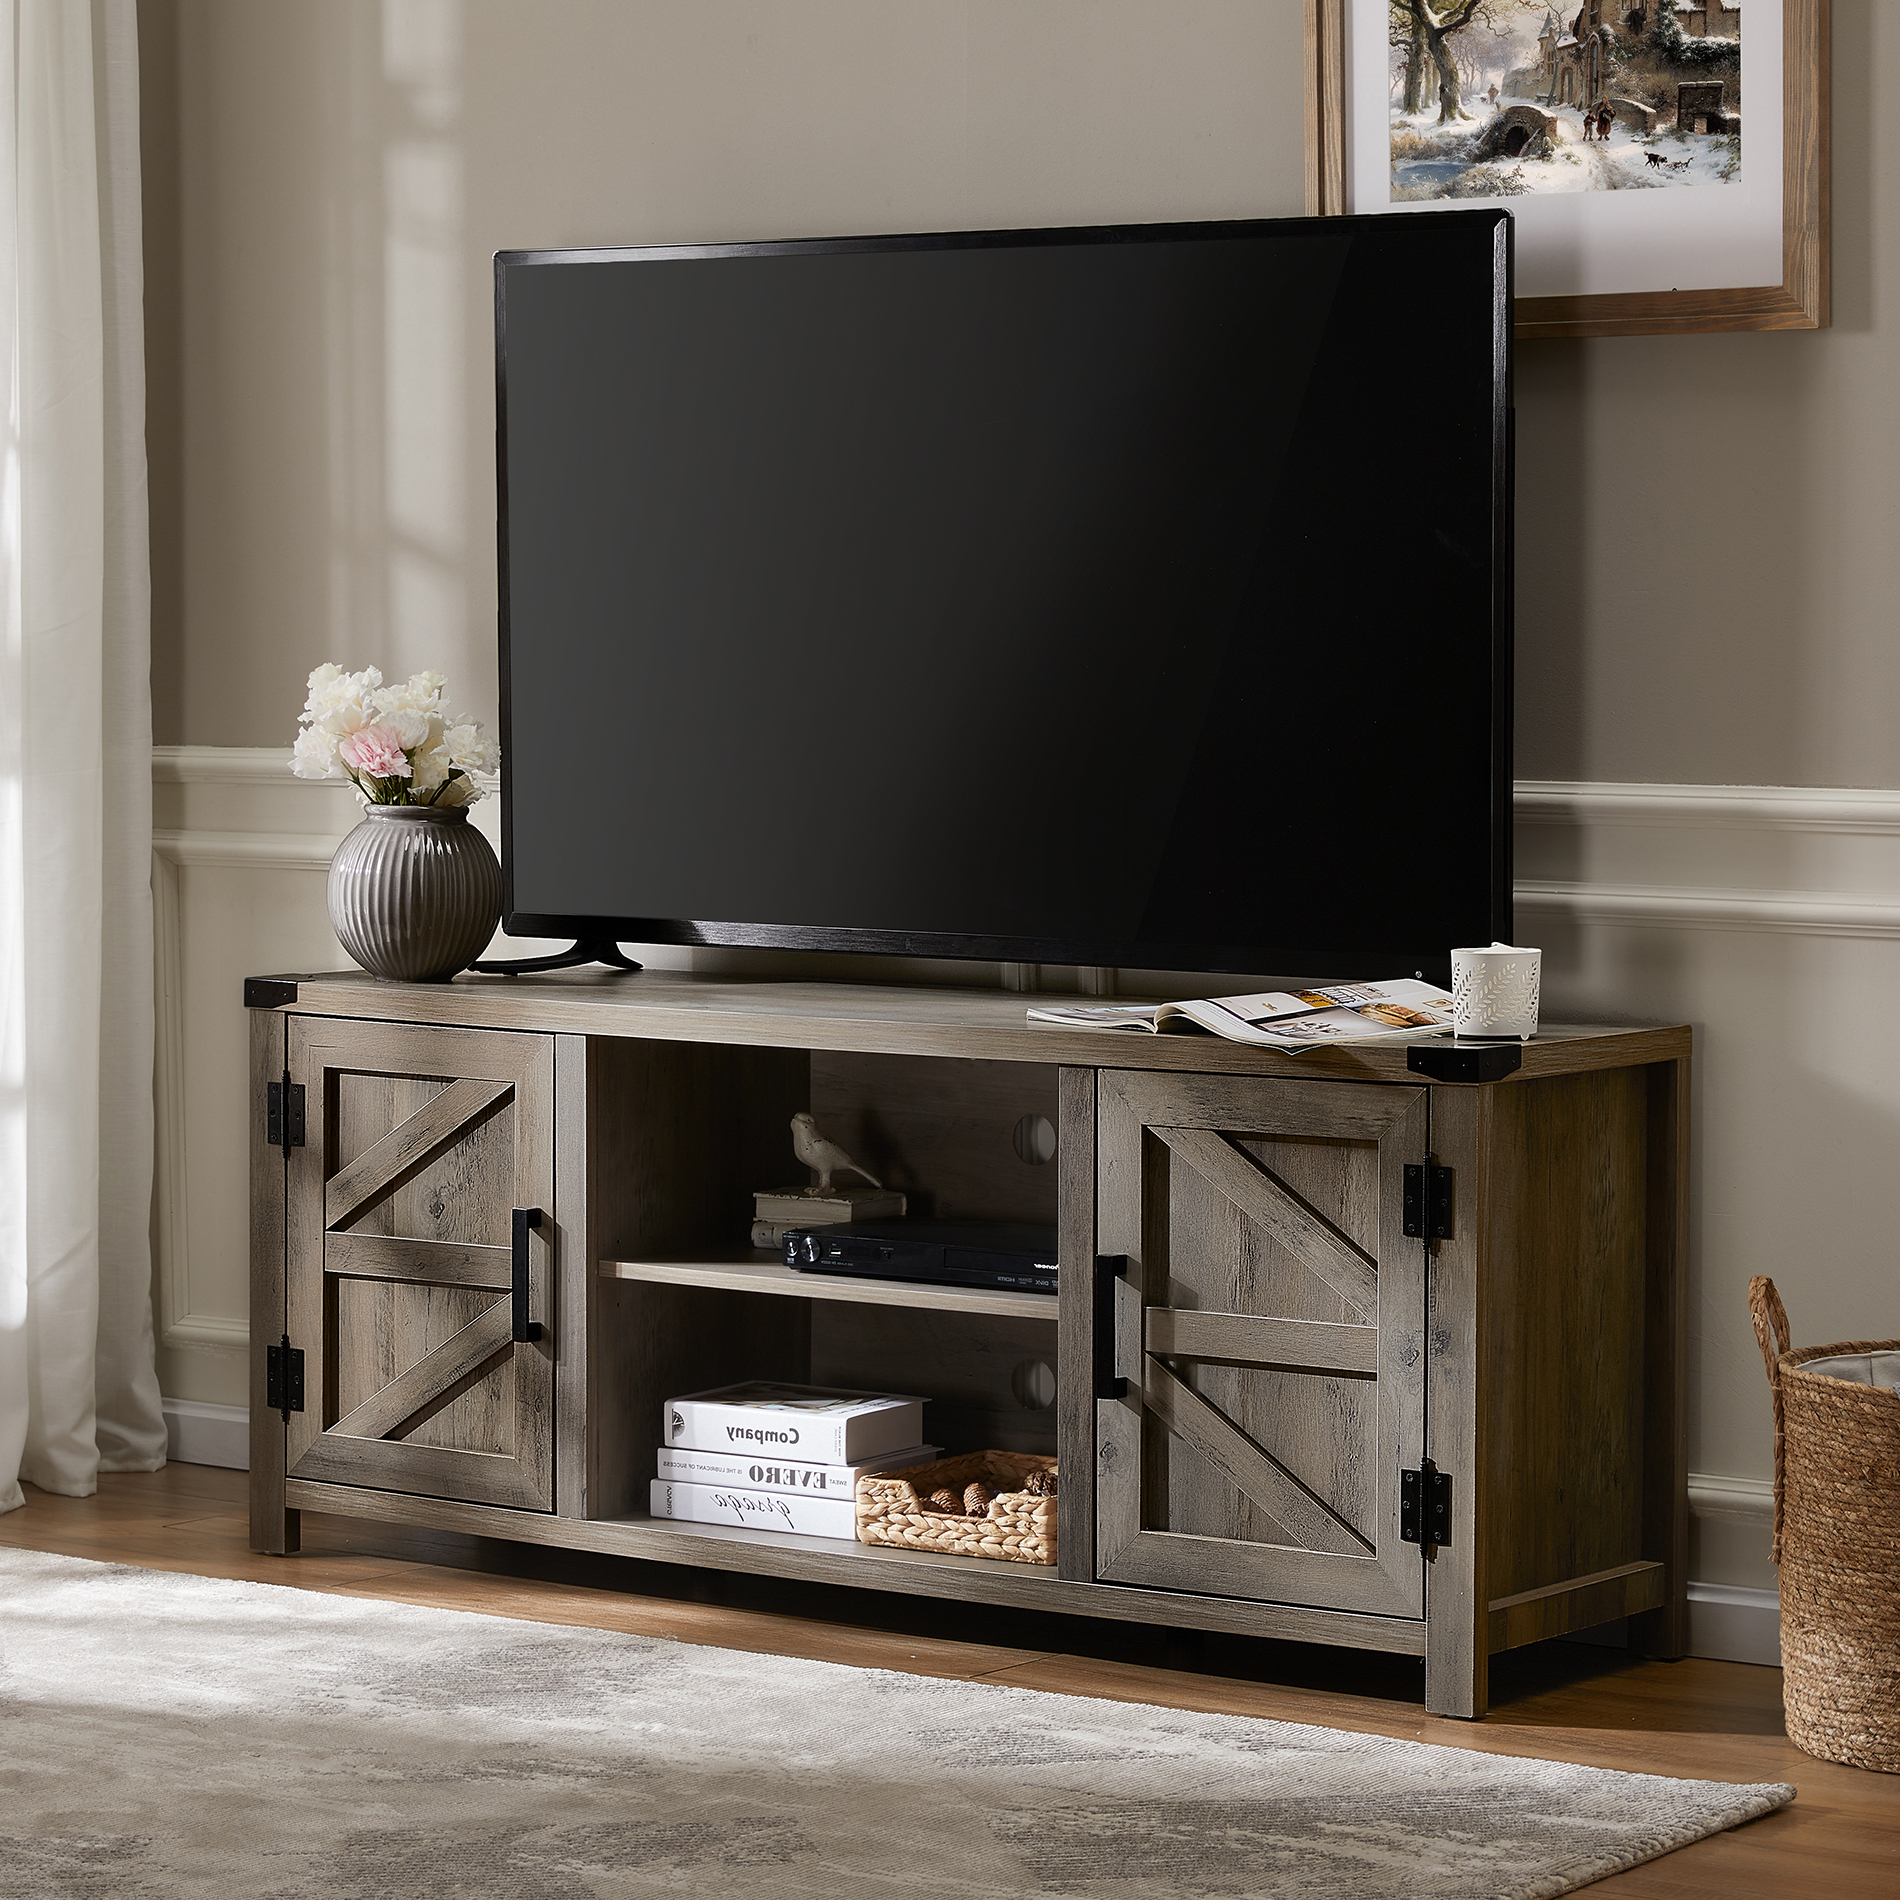 Wampat Farmhouse Barn Door Wood Tv Stands For 65'' Flat Pertaining To Corona Grey Flat Screen Tv Unit Stands (View 3 of 15)